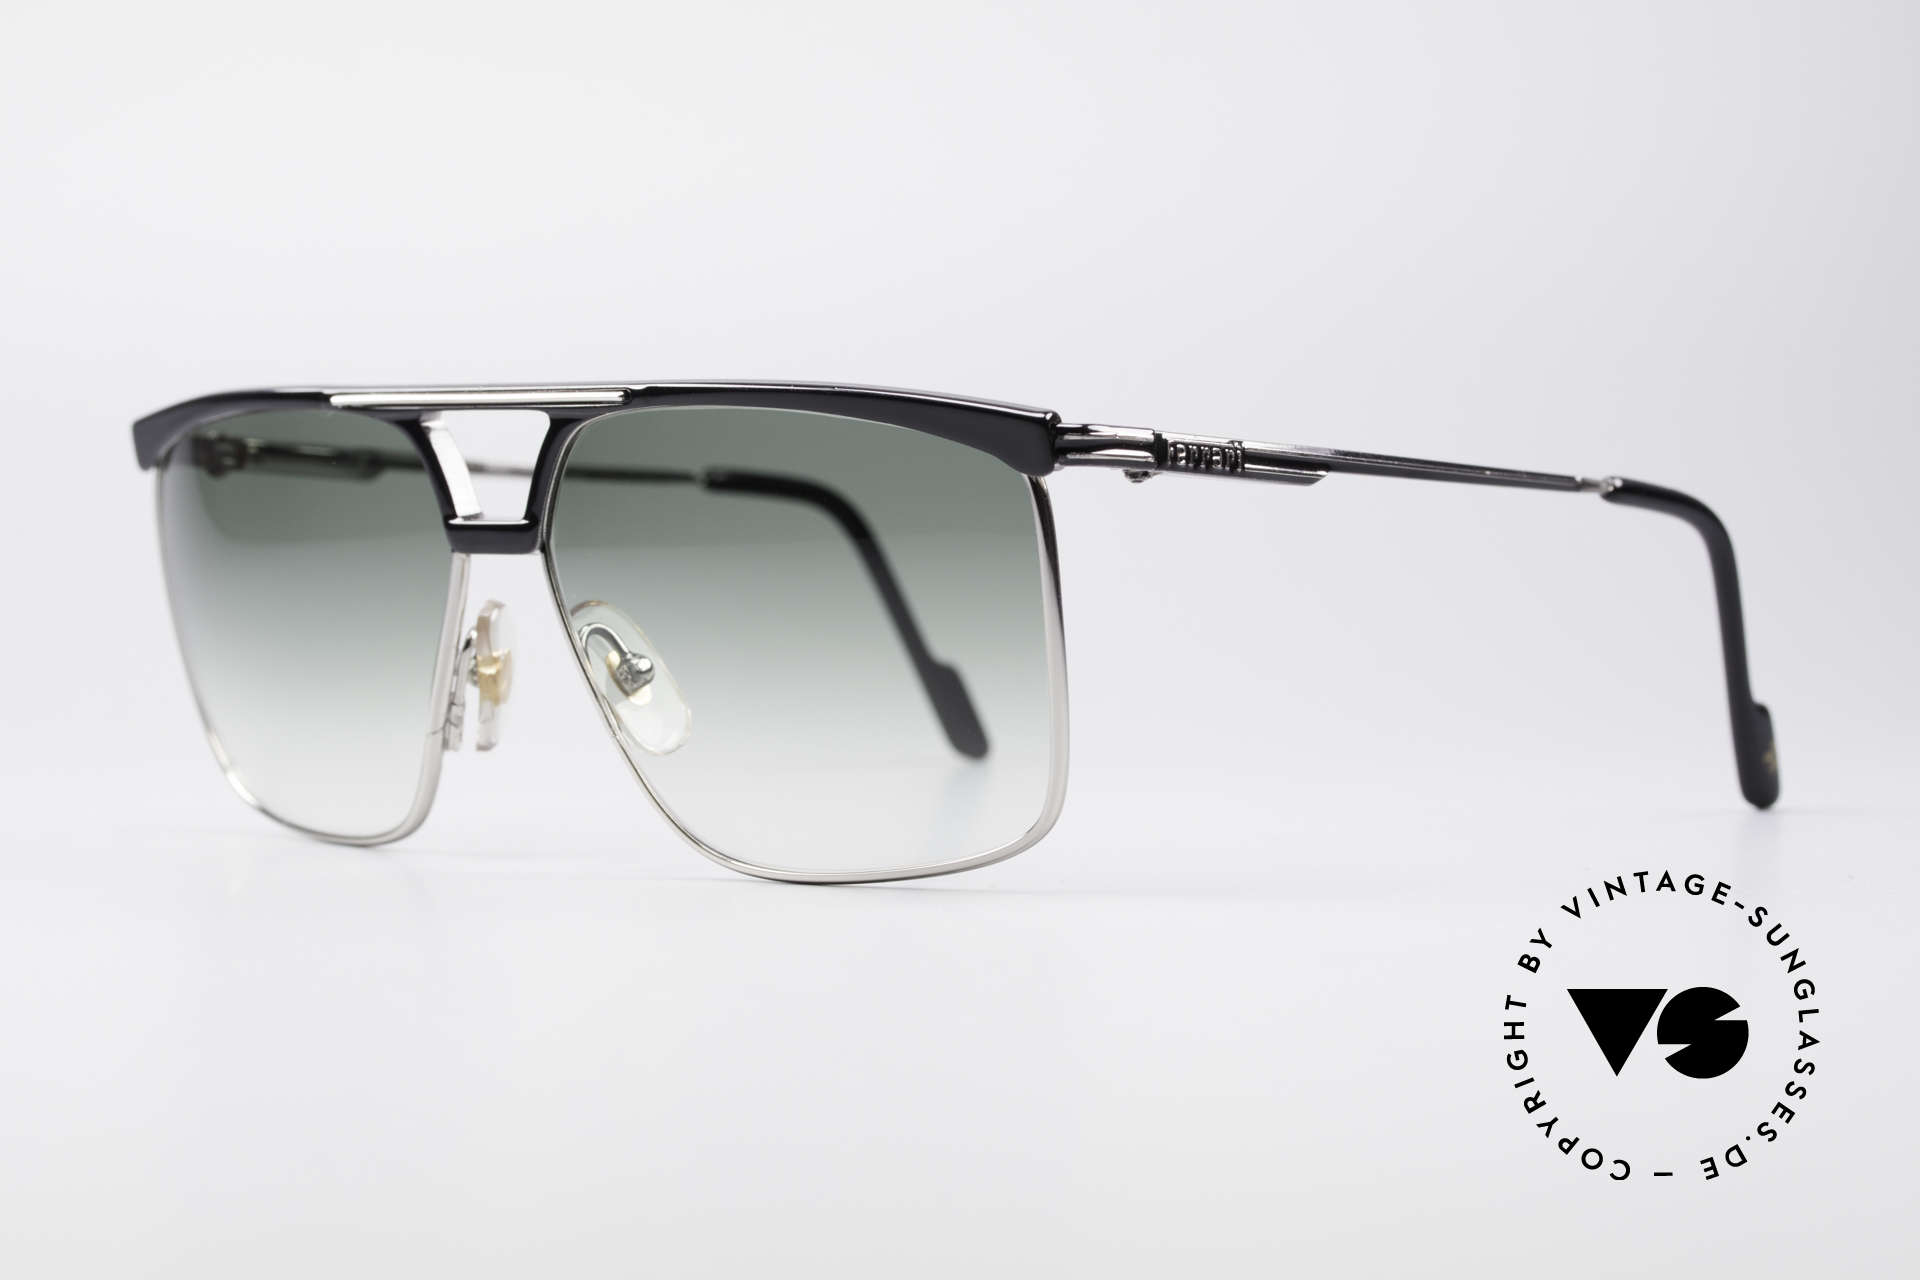 Ferrari F35 Men's Vintage 80's Shades, high-end Alutanium frame with flexible spring hinges, Made for Men